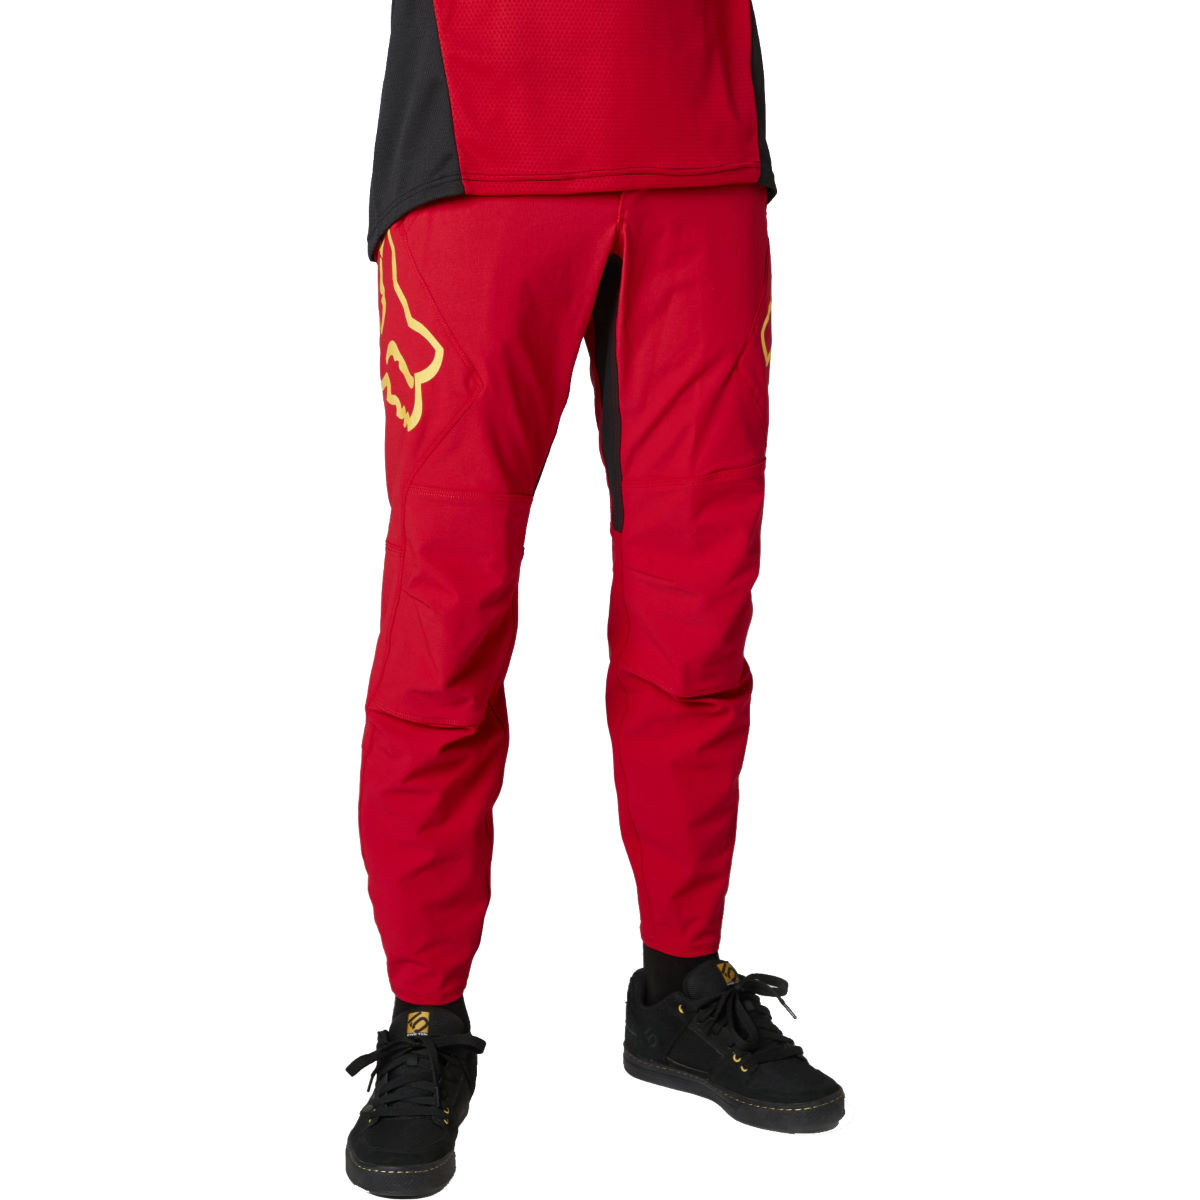 Fox Racing Defend Cycling Trousers Rs - 30 Chili  Trousers